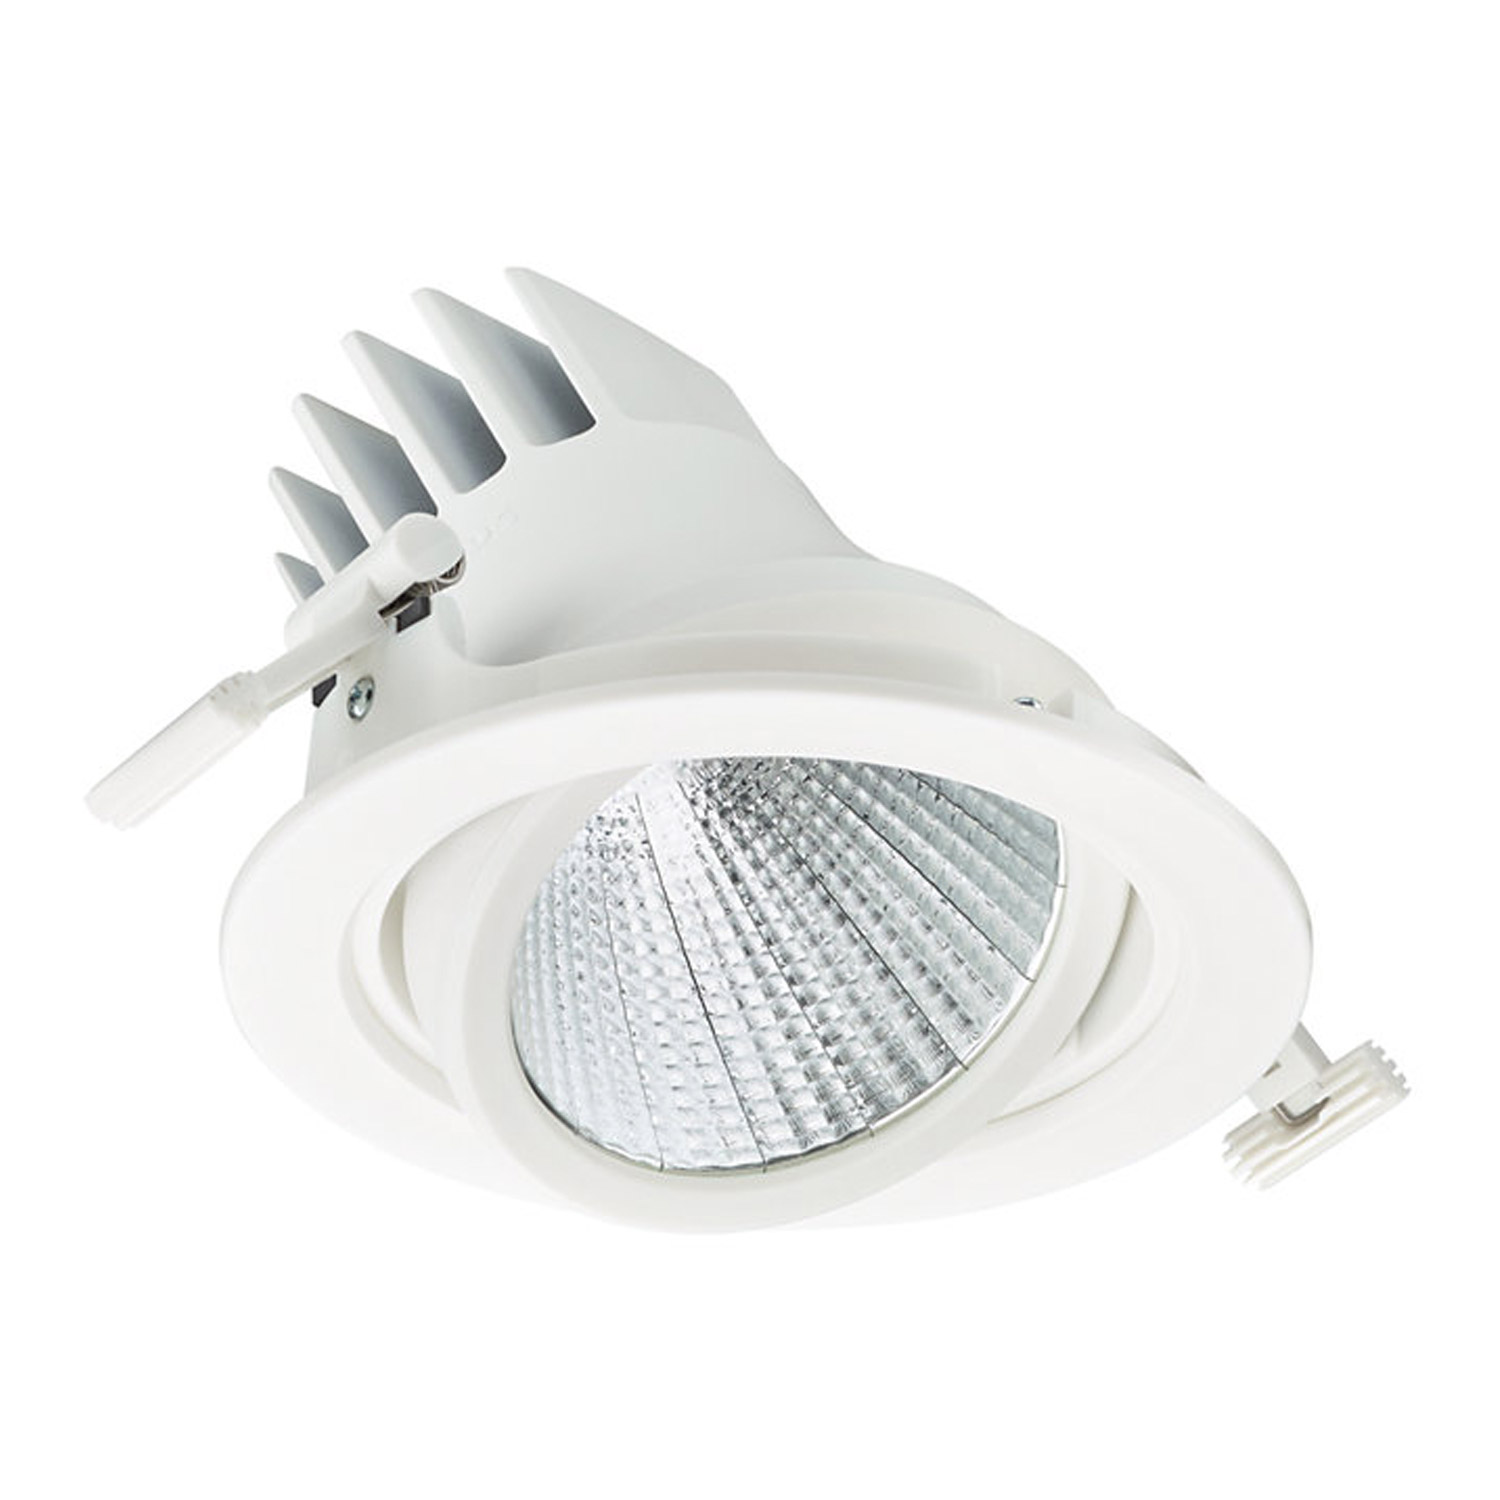 Philips LuxSpace Accent Performance LED Spot RS781B 31.5W 830 3900lm - Warm White